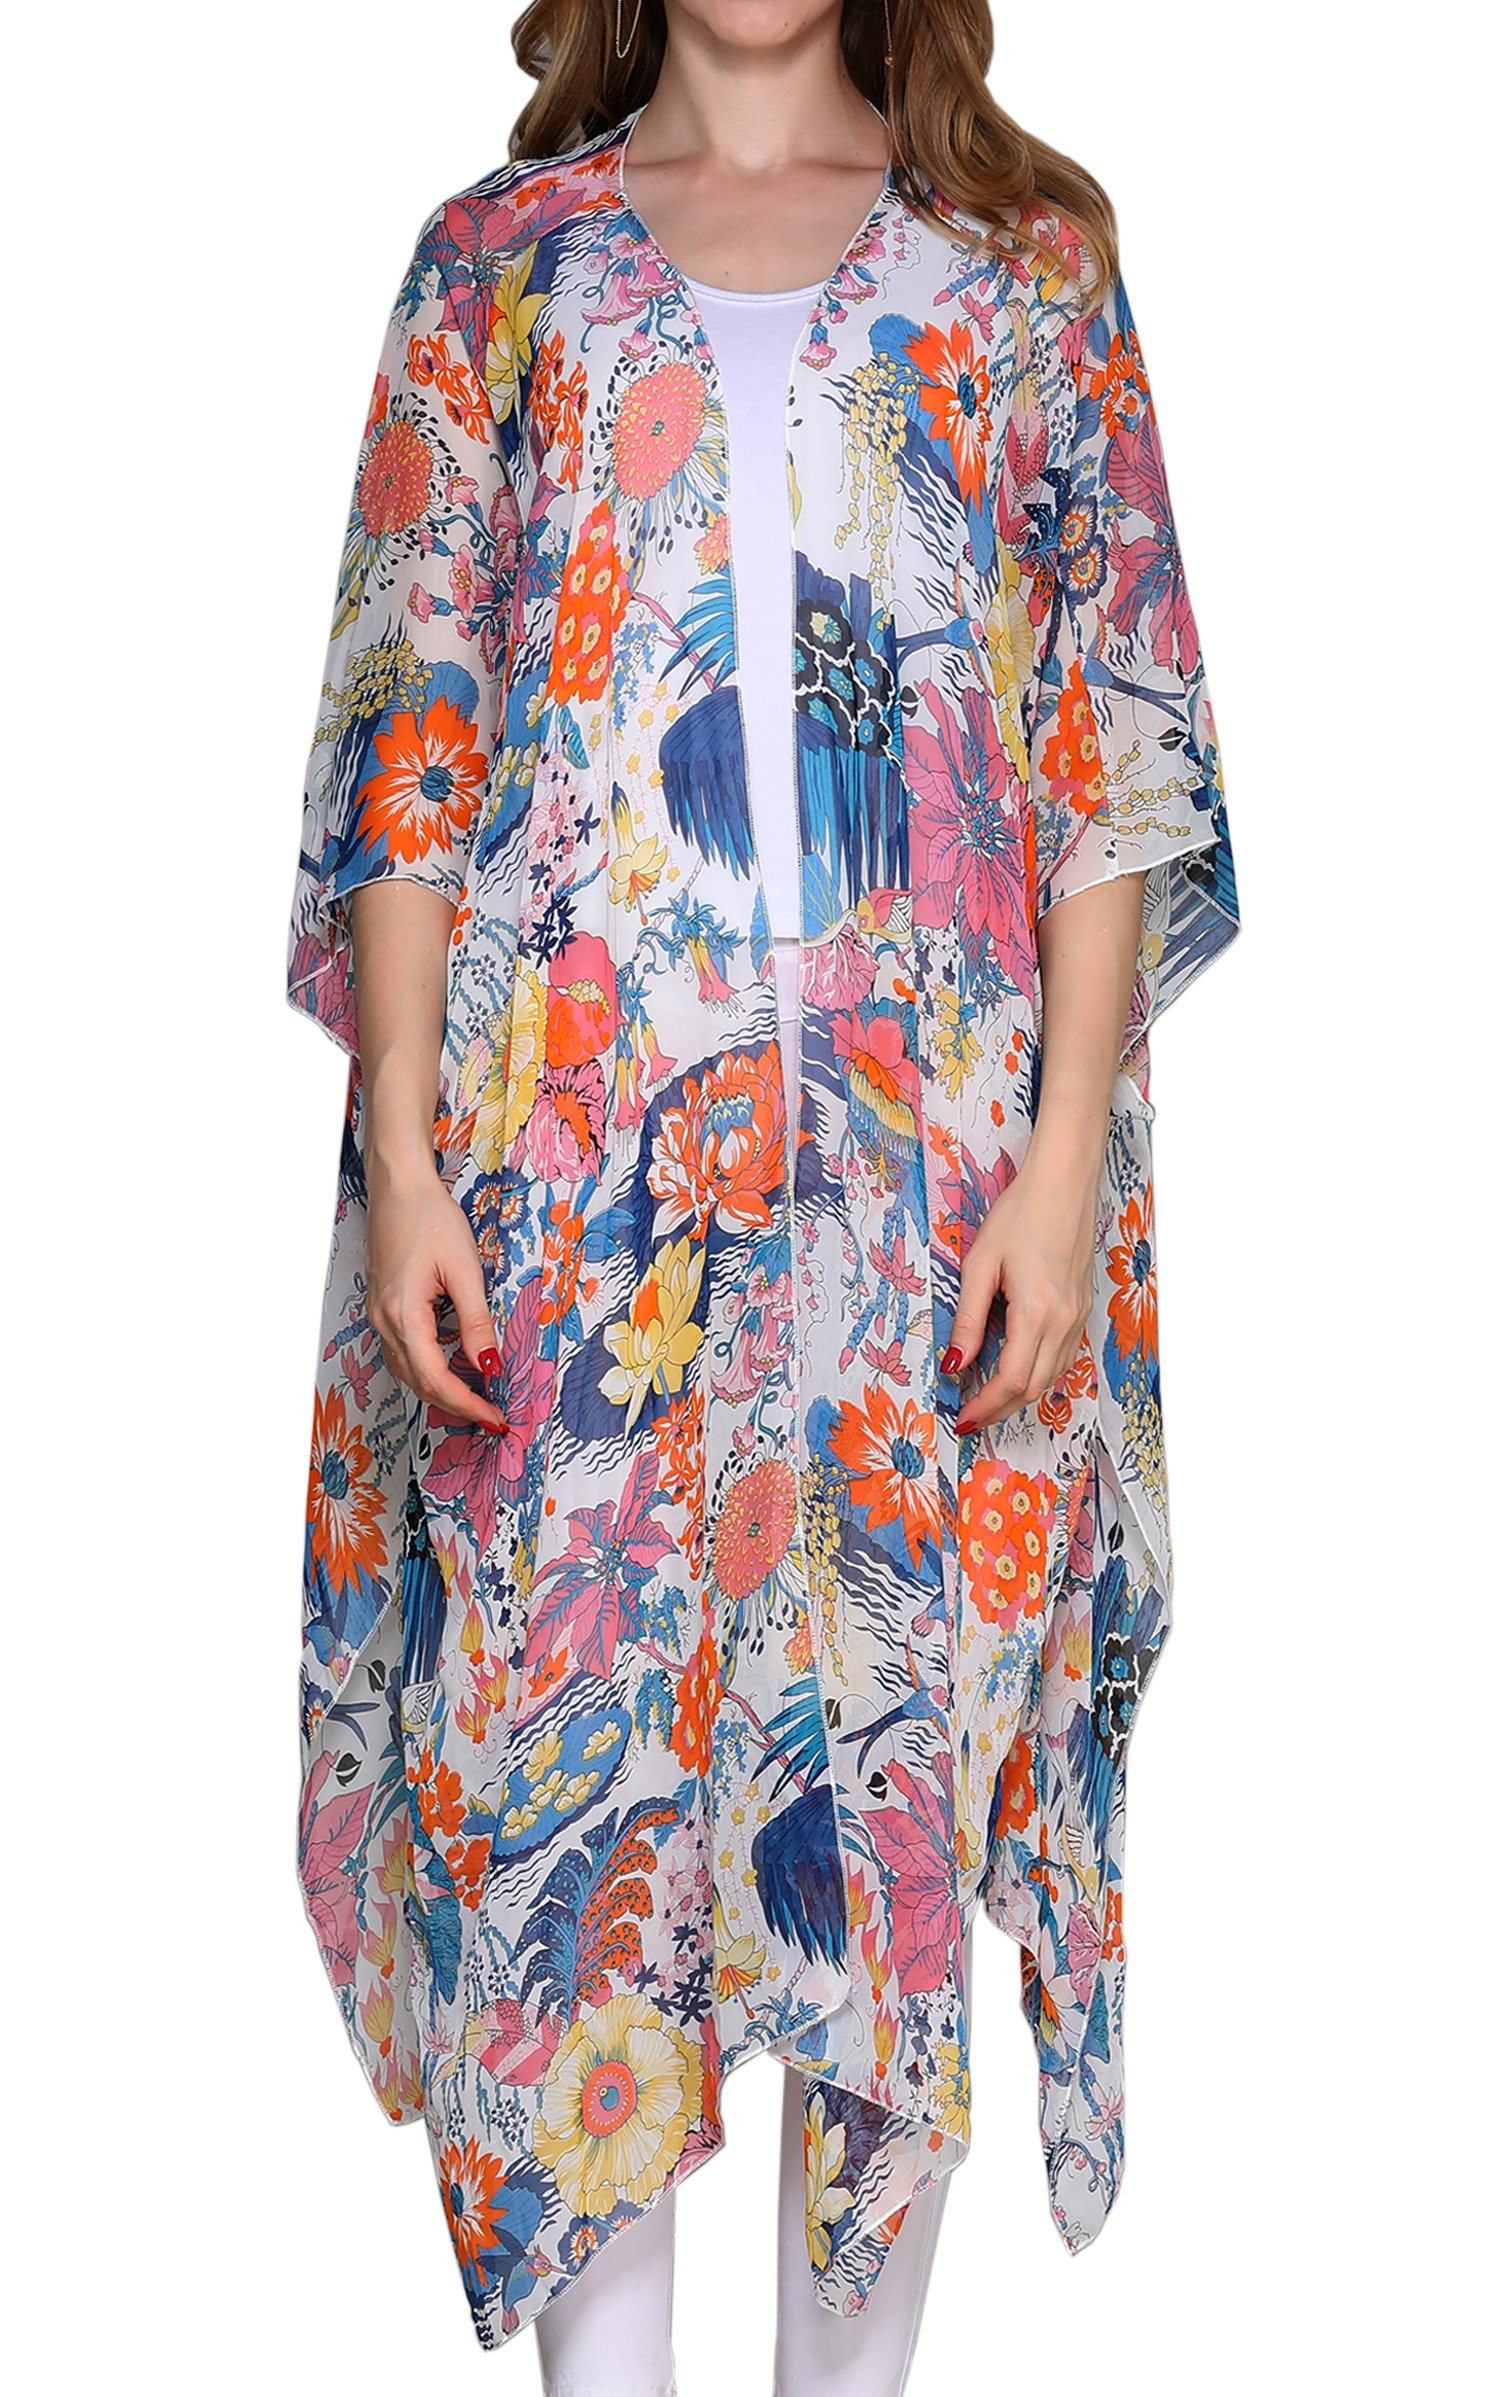 Hibluco Women's Sheer Chiffon Floral Kimono Cardigan Long Blouse Loose Tops Outwear by Hibluco